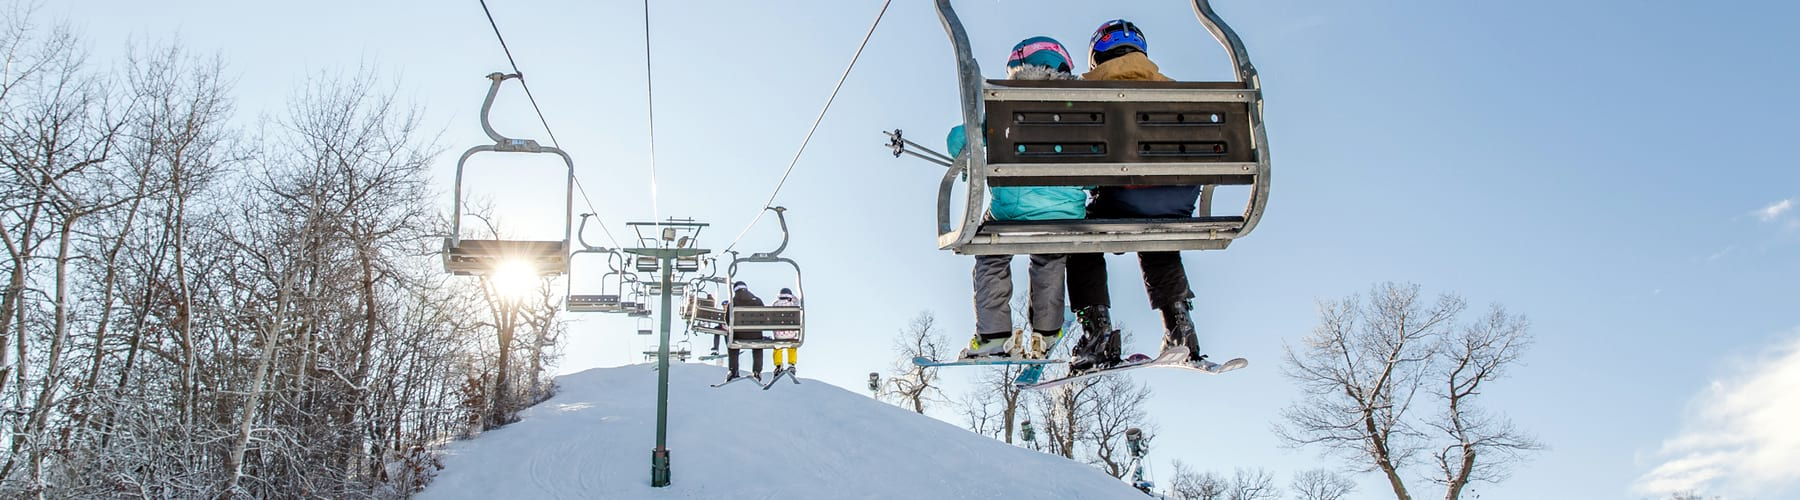 Chairlift at The Mountain Top